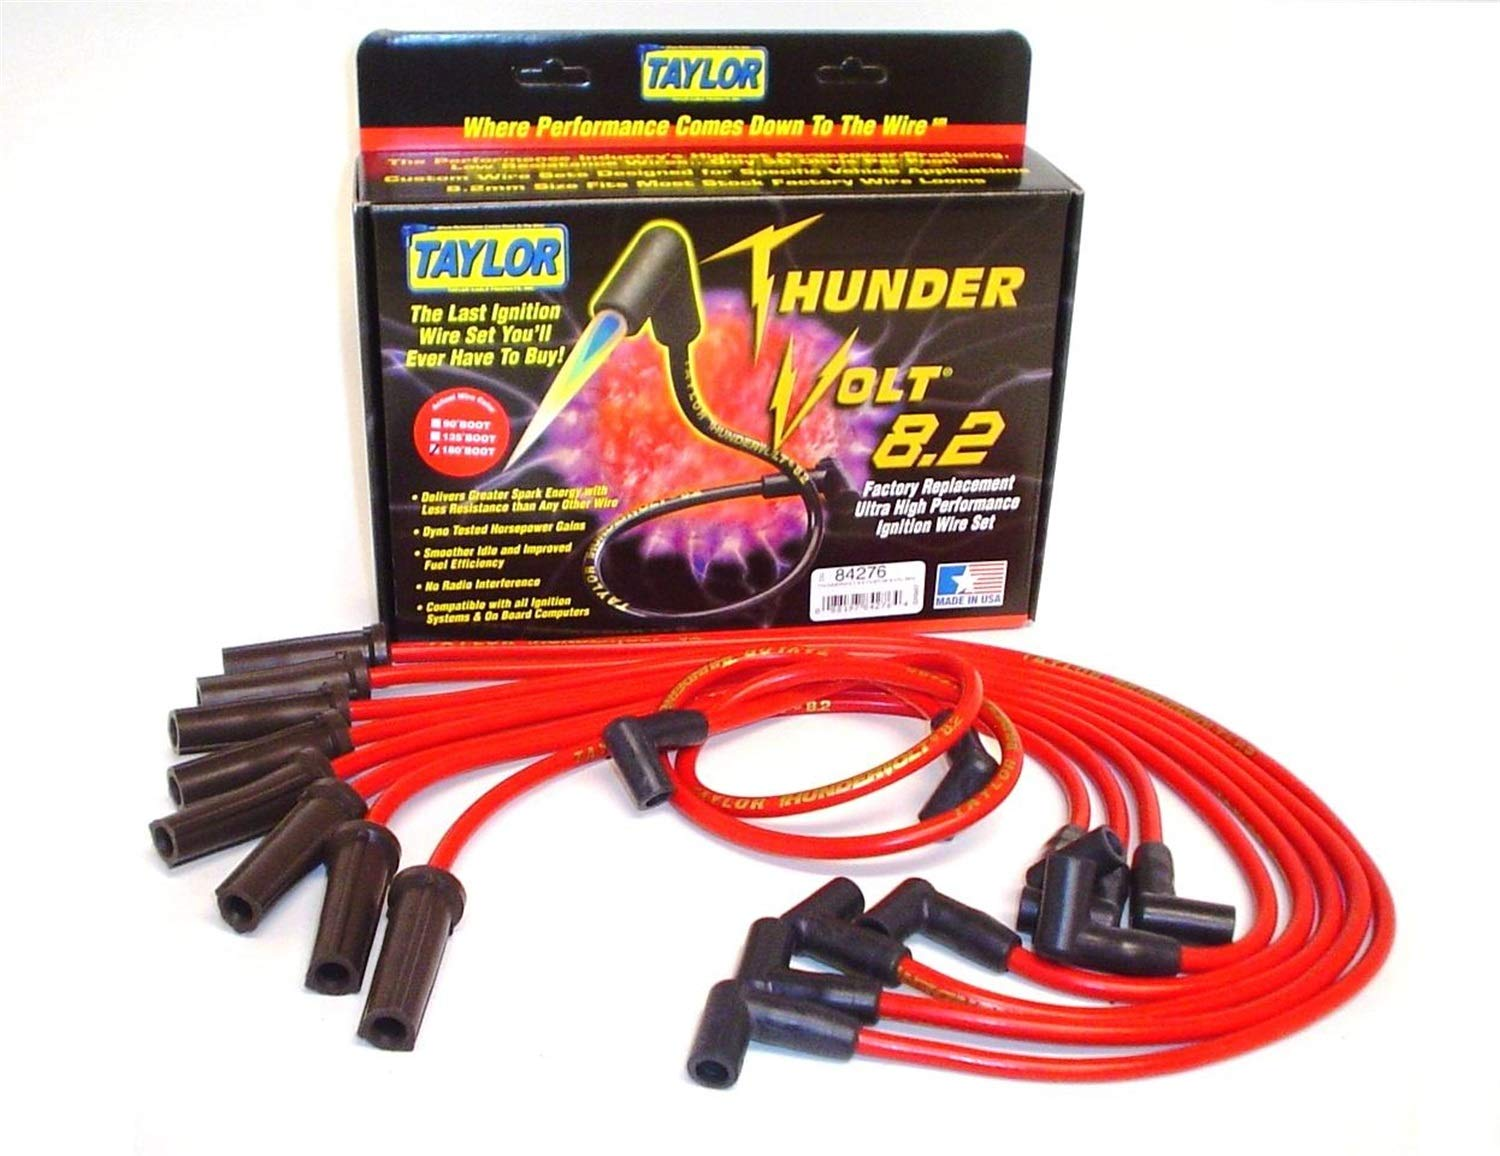 Taylor Cable 84276 ThunderVolt 8.2 Spark Plug Wire Set by Taylor Cable